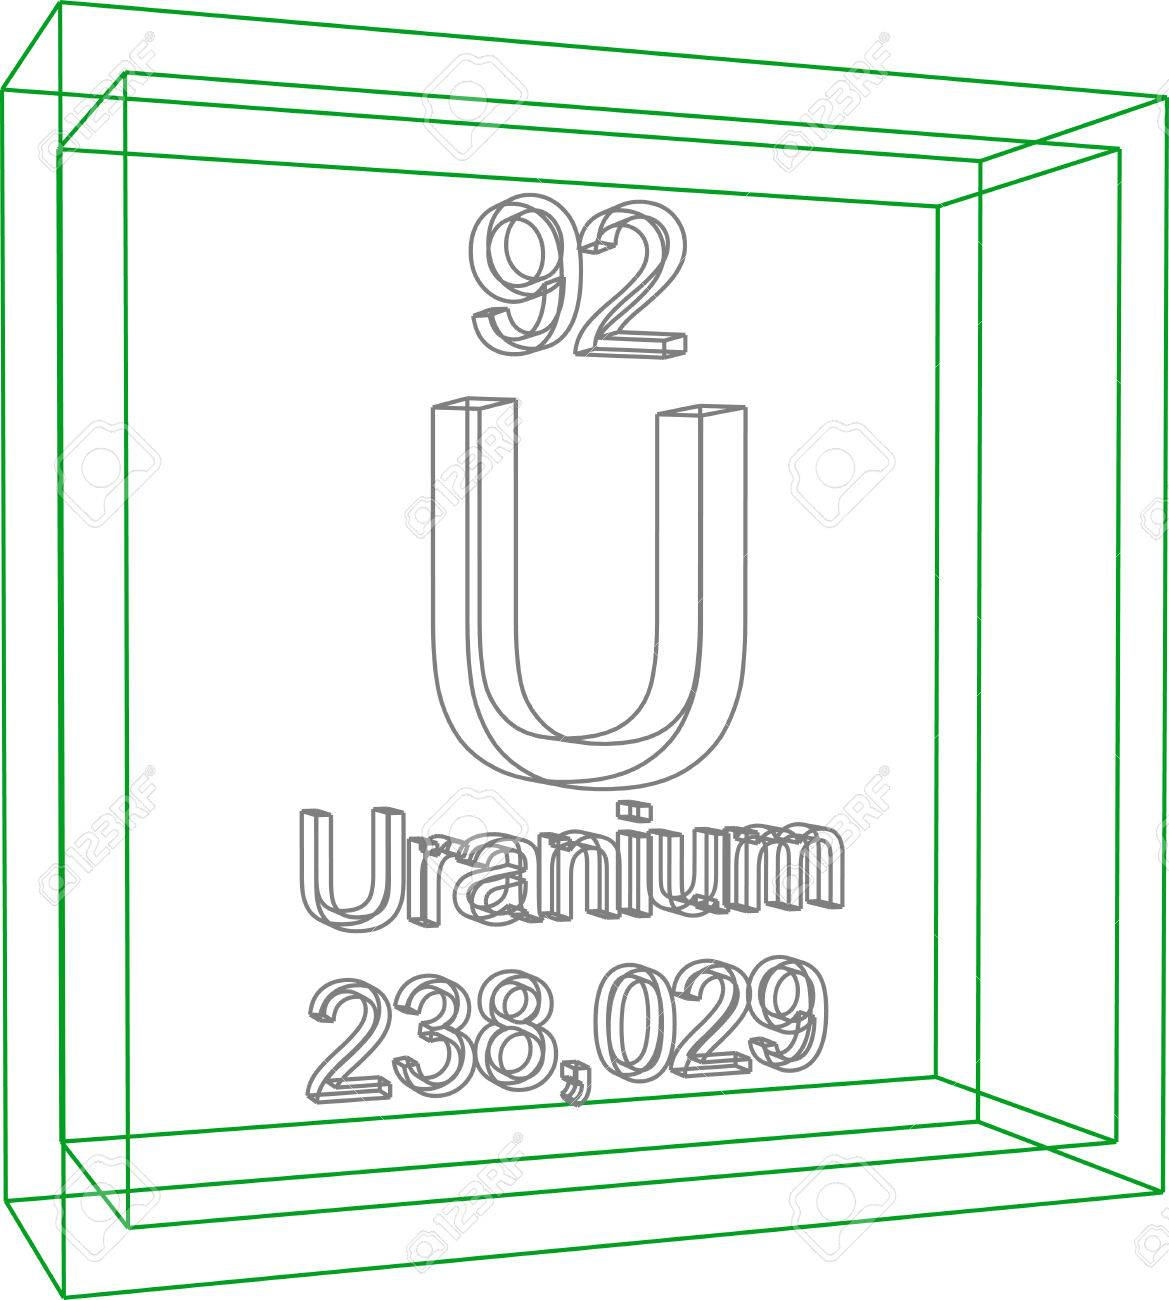 Periodic table of elements uranium choice image periodic table periodic table of elements uranium royalty free cliparts periodic table of elements uranium stock vector 57970975 gamestrikefo Image collections